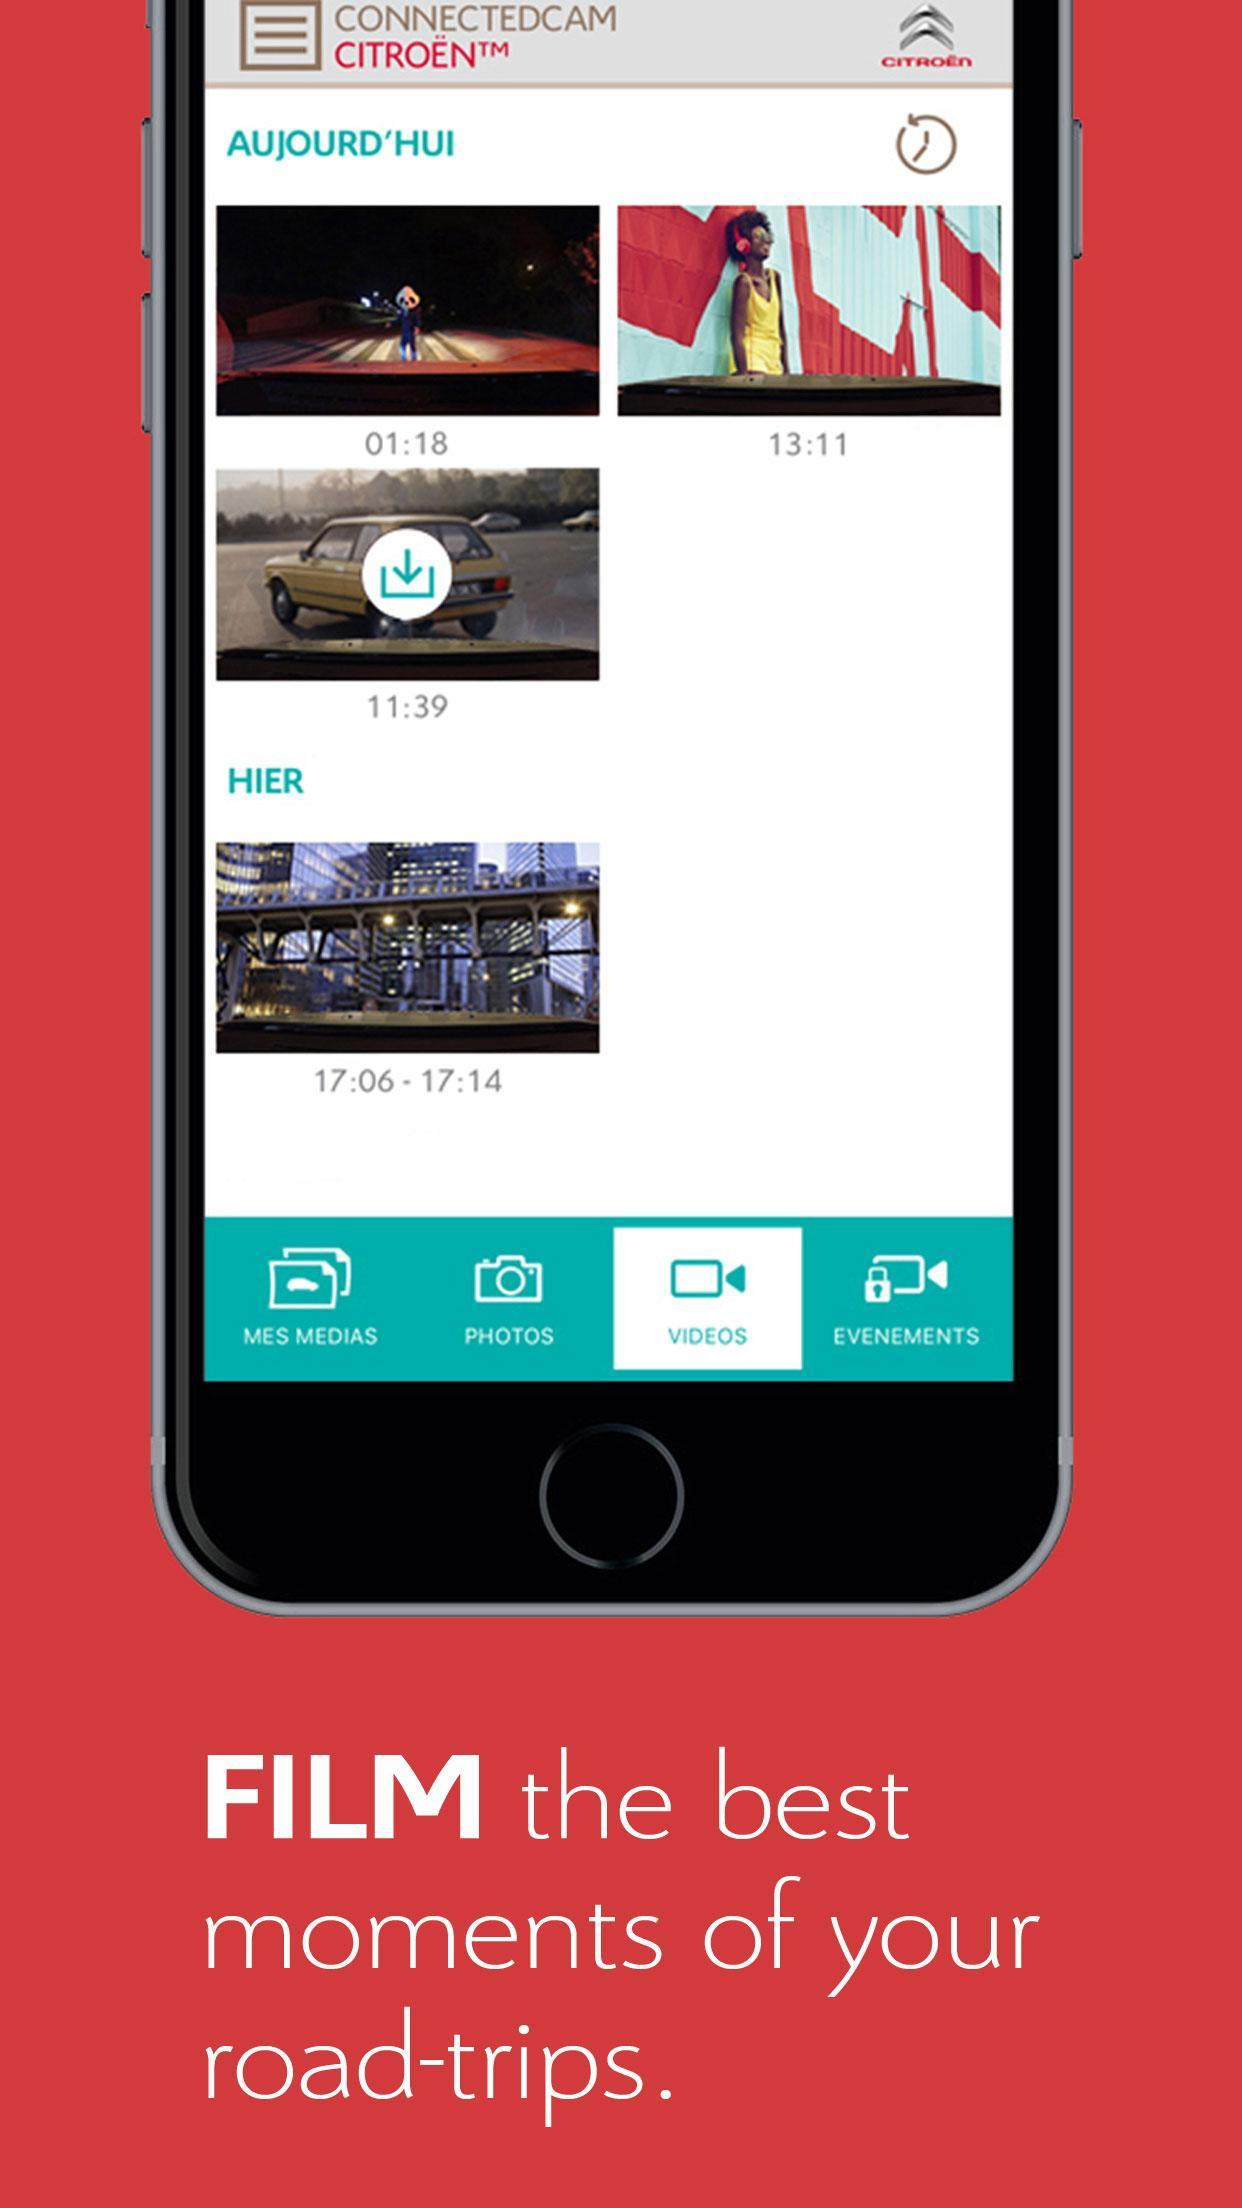 ConnectedCAM Citroën for Android - APK Download